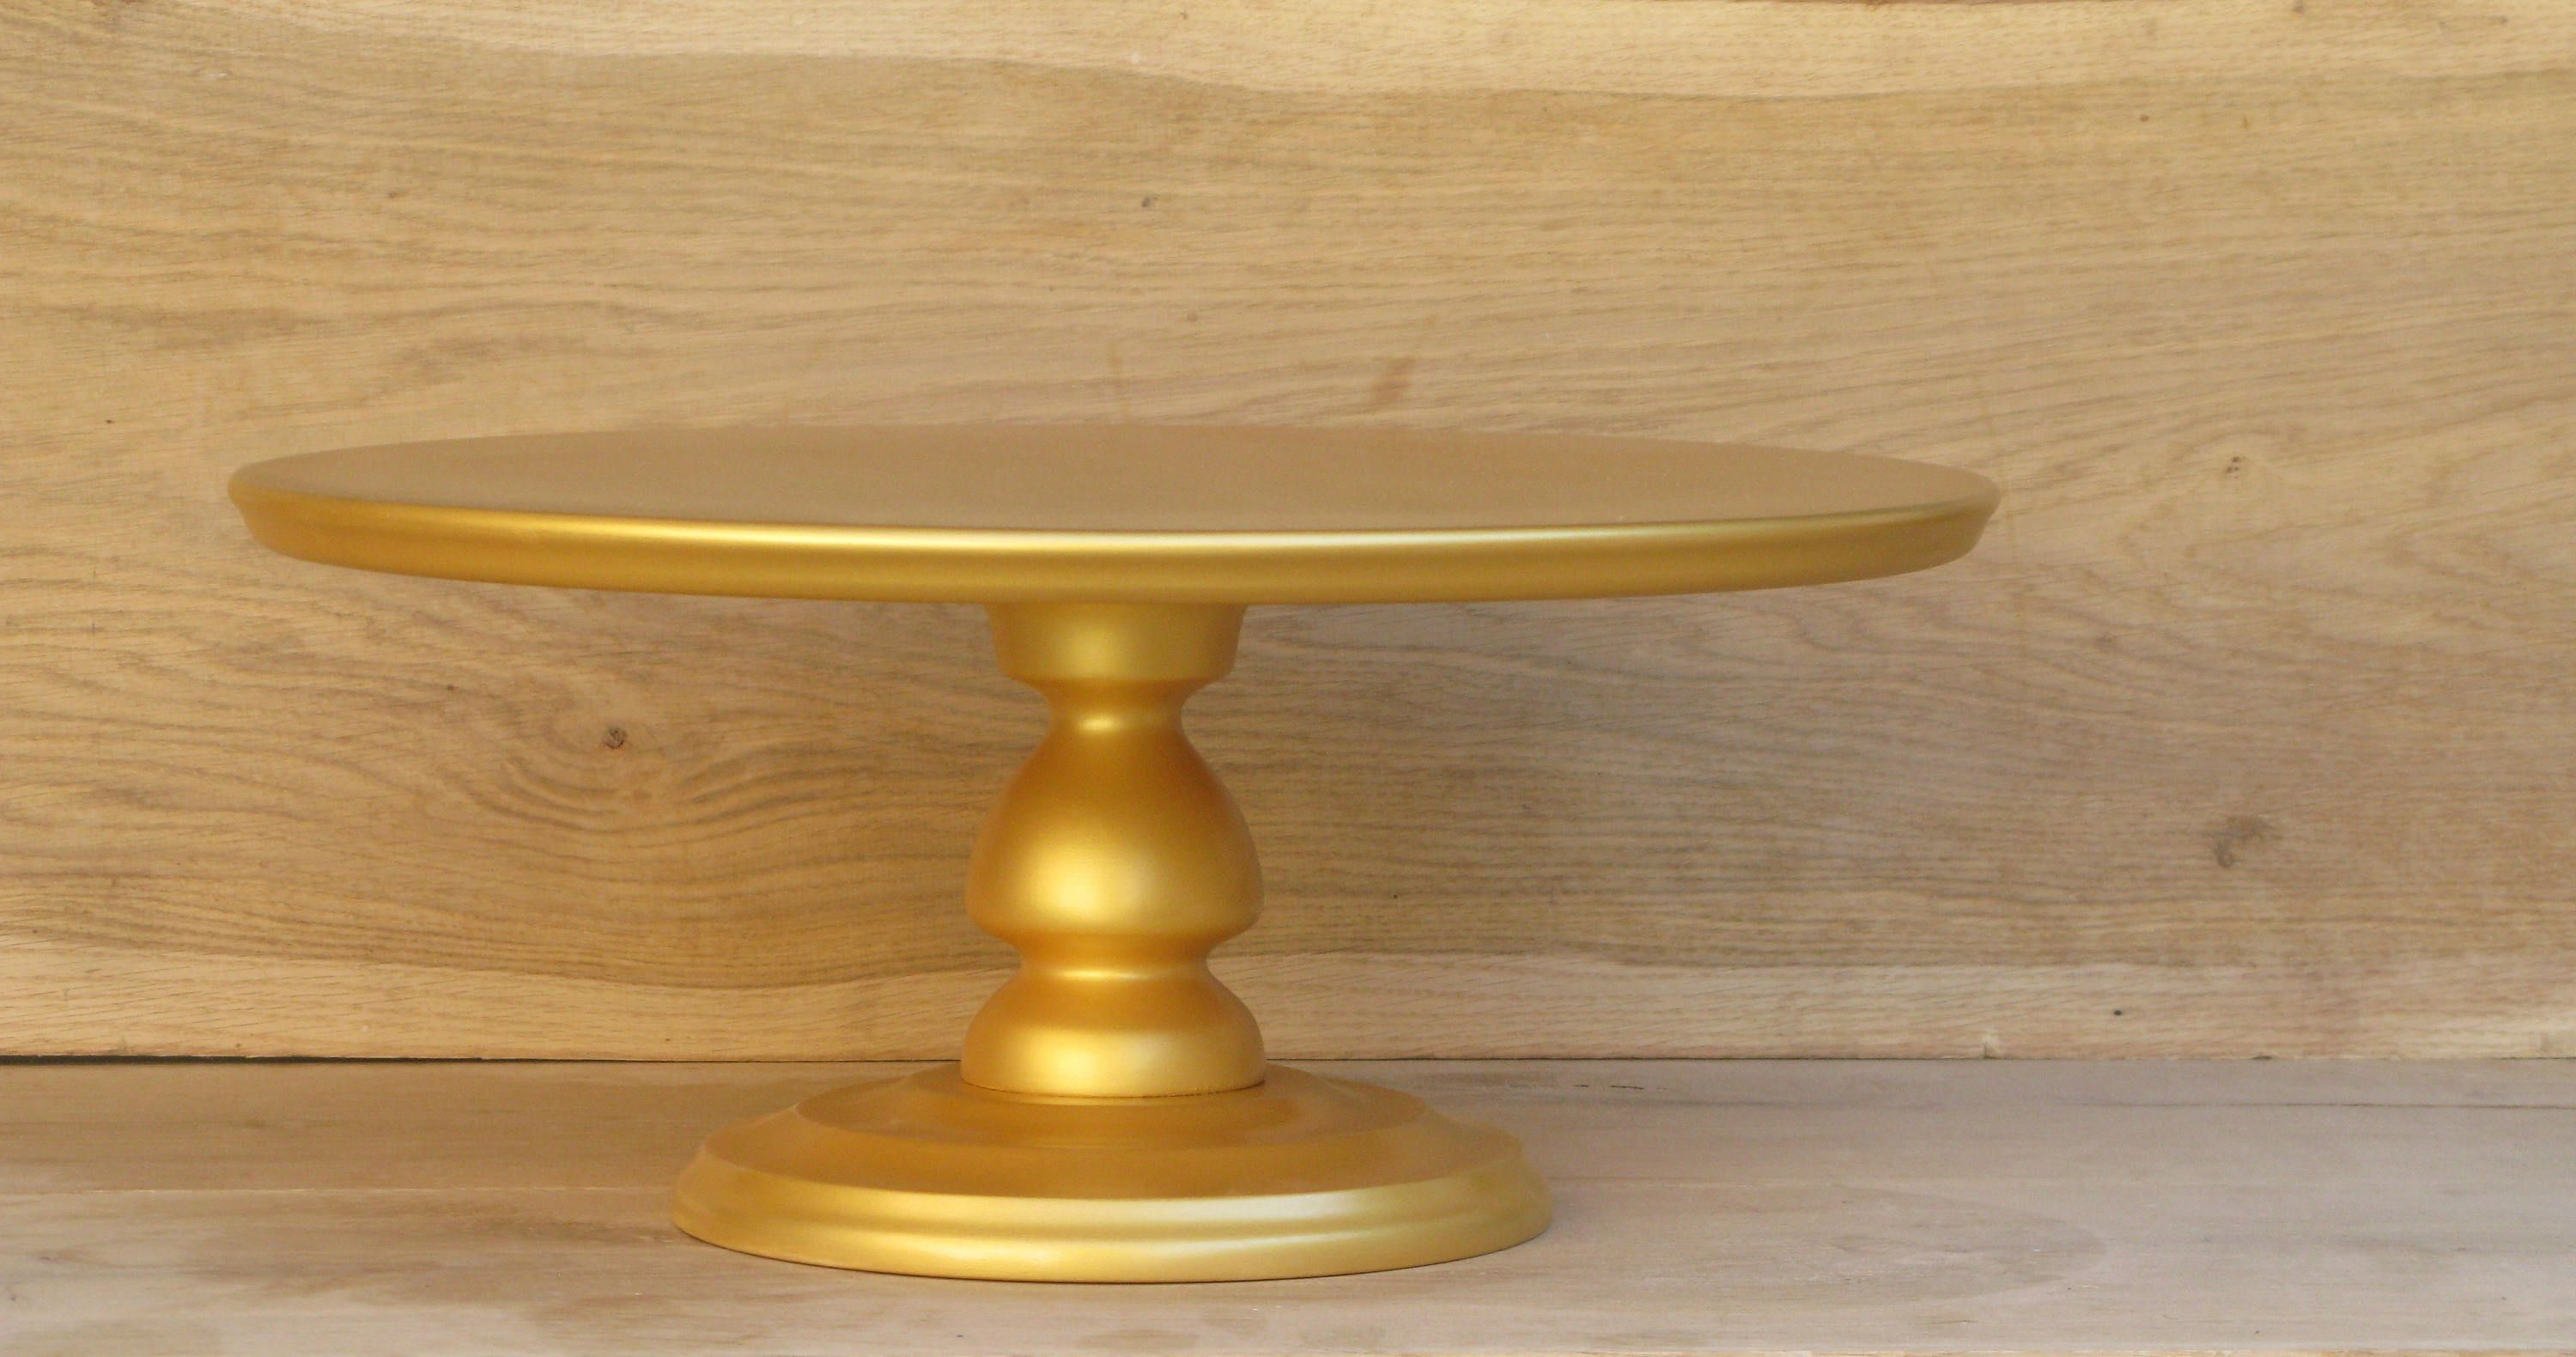 22 018161412 Inches Etsy In 2020 Wedding Cake Stand Gold Wooden Cake Stands Gold Cake Stand